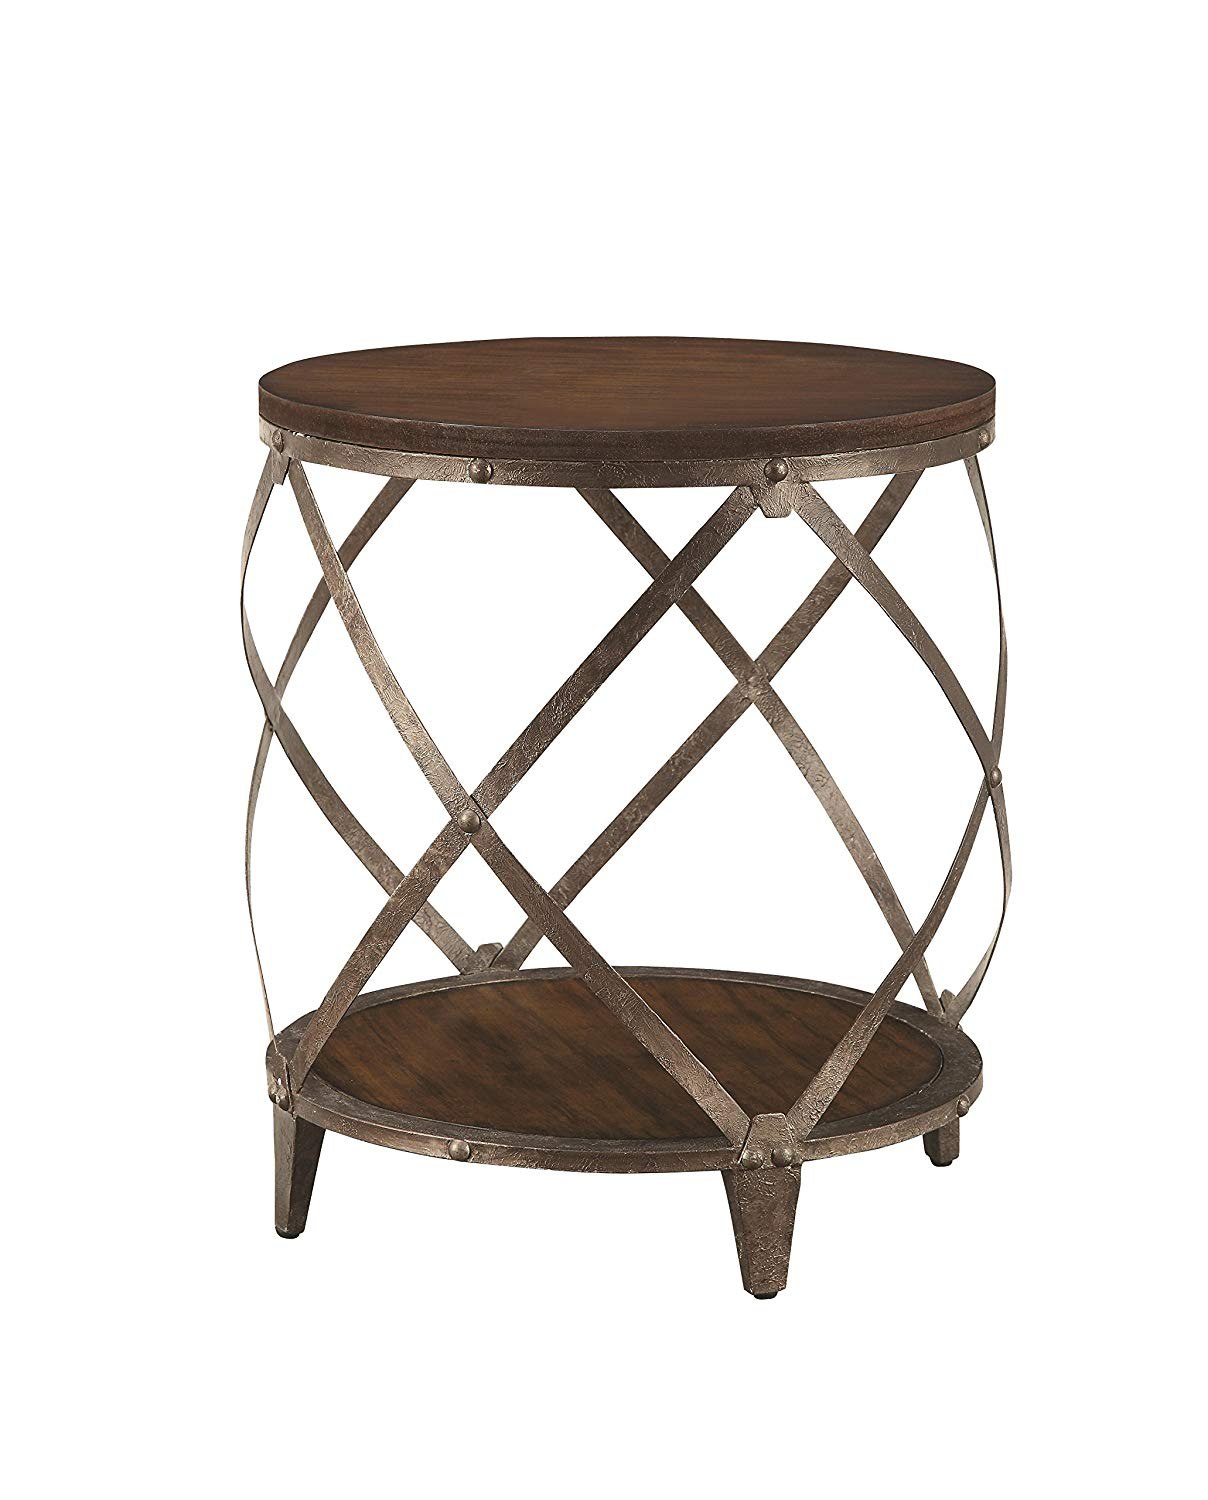 metal accent table with drum shape brown kitchen dining round oak echo dot glass and coffee square wood side marble gold modern desk lamp best patio furniture outdoor television